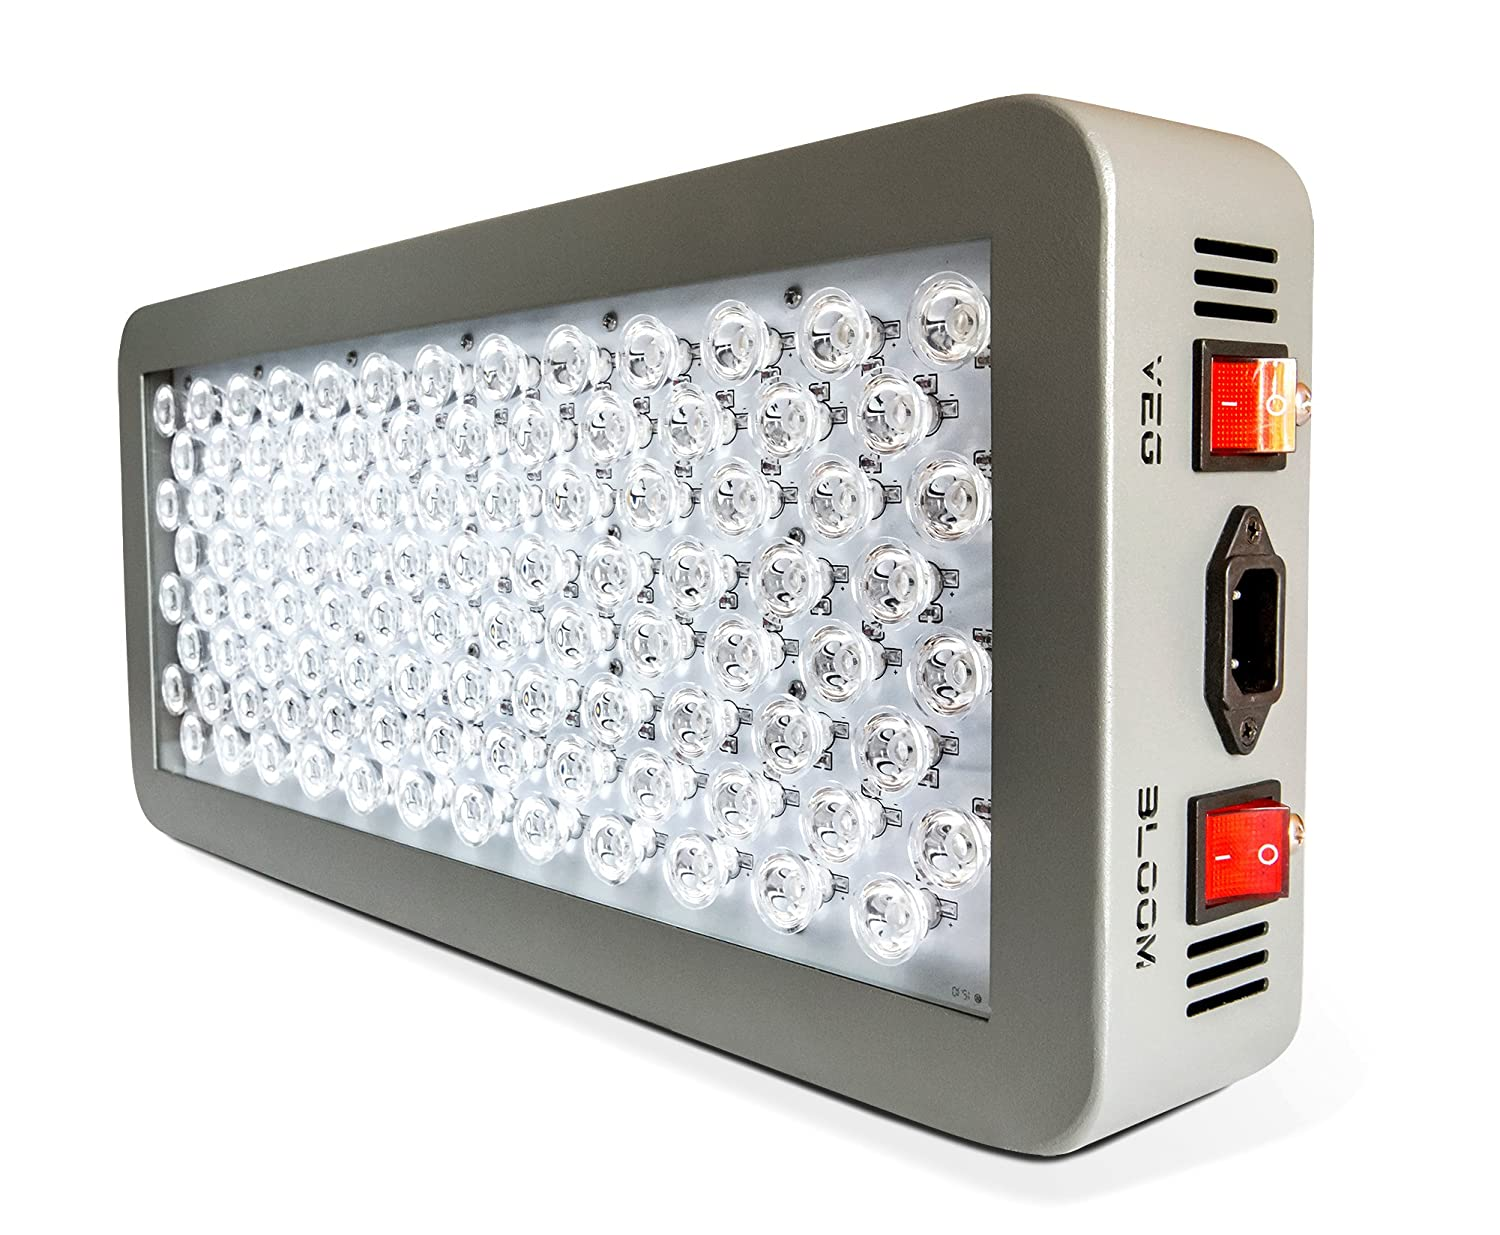 Advanced Platinum Series P300 300w 12-band LED Grow Lights